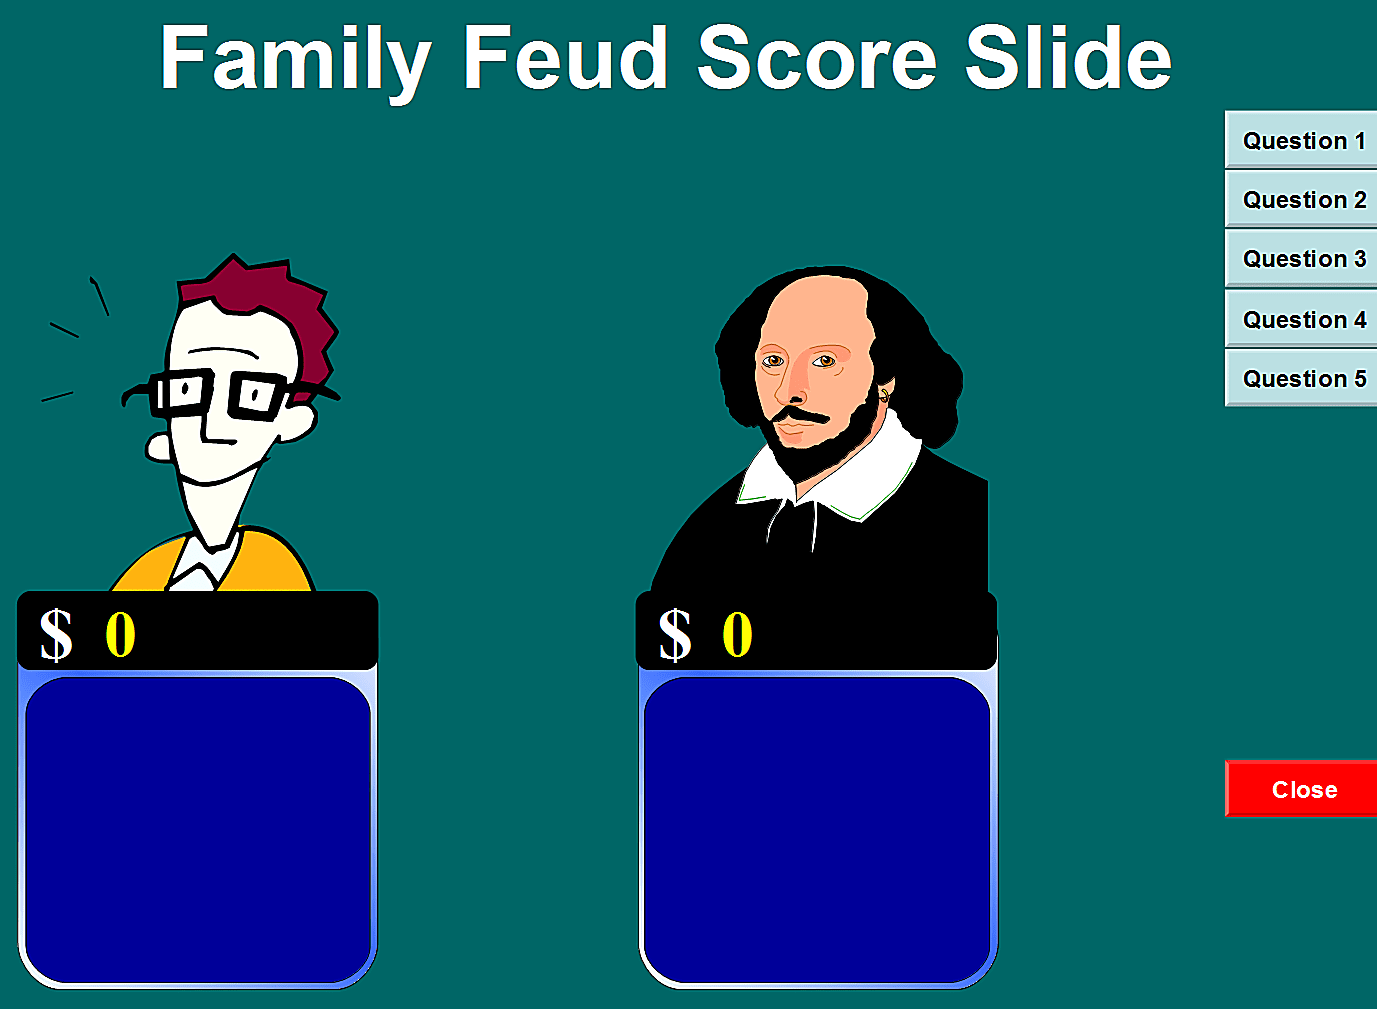 6 free family feud powerpoint templates for teachers, Presentation templates